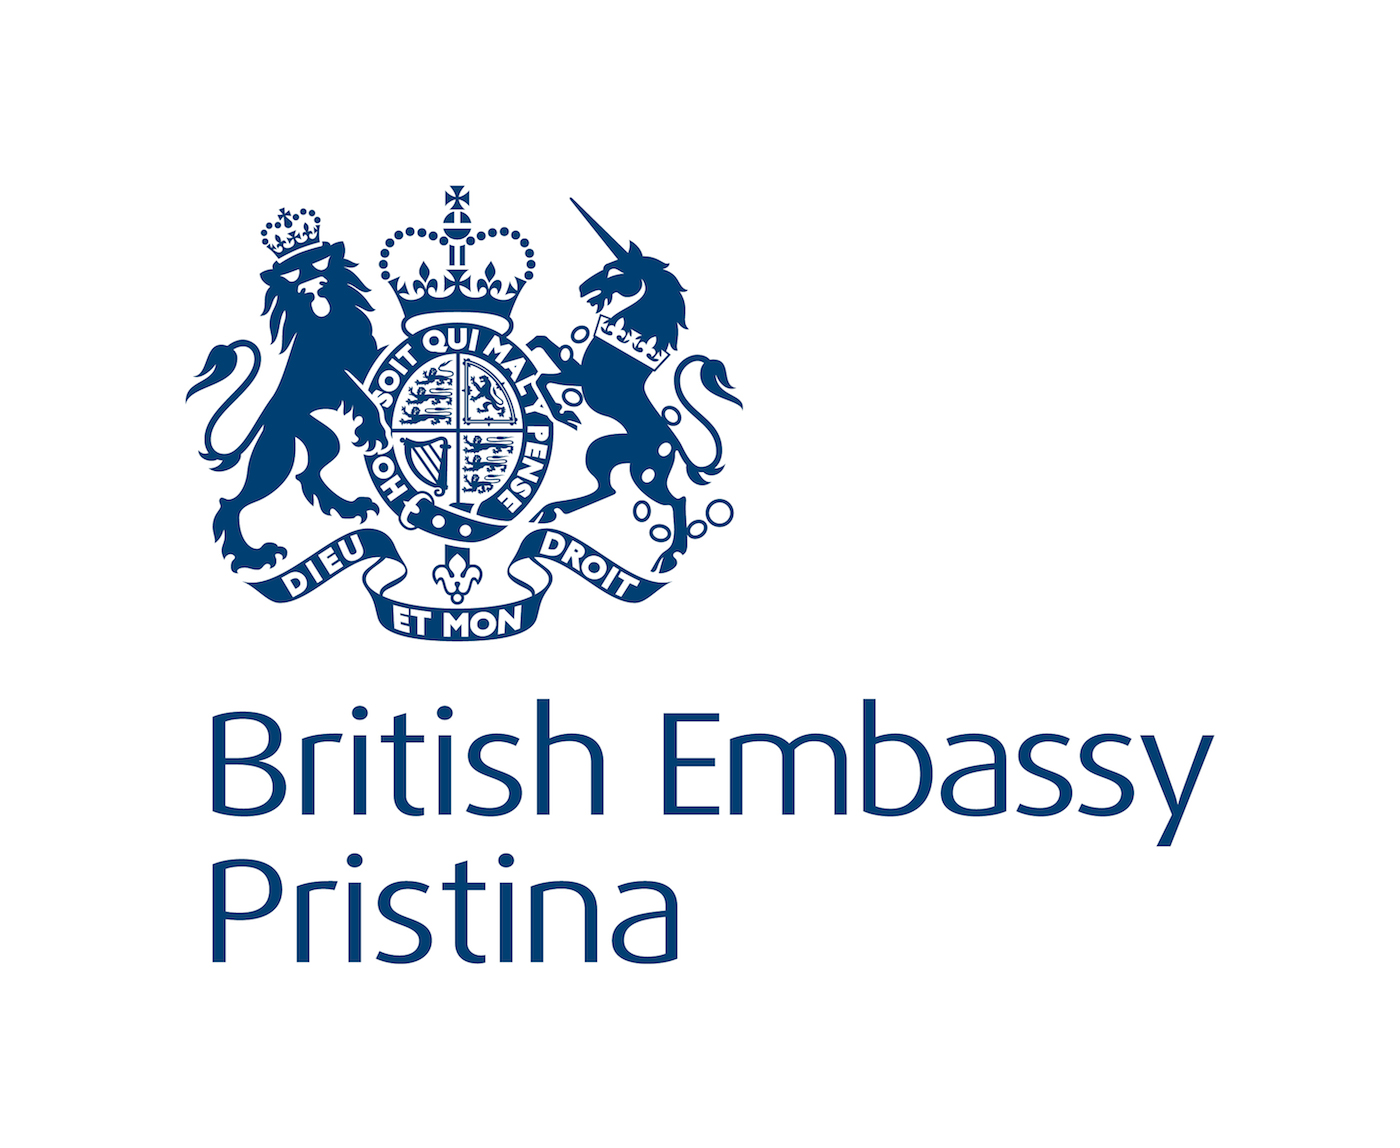 British Embassy Logos Fonts In Use